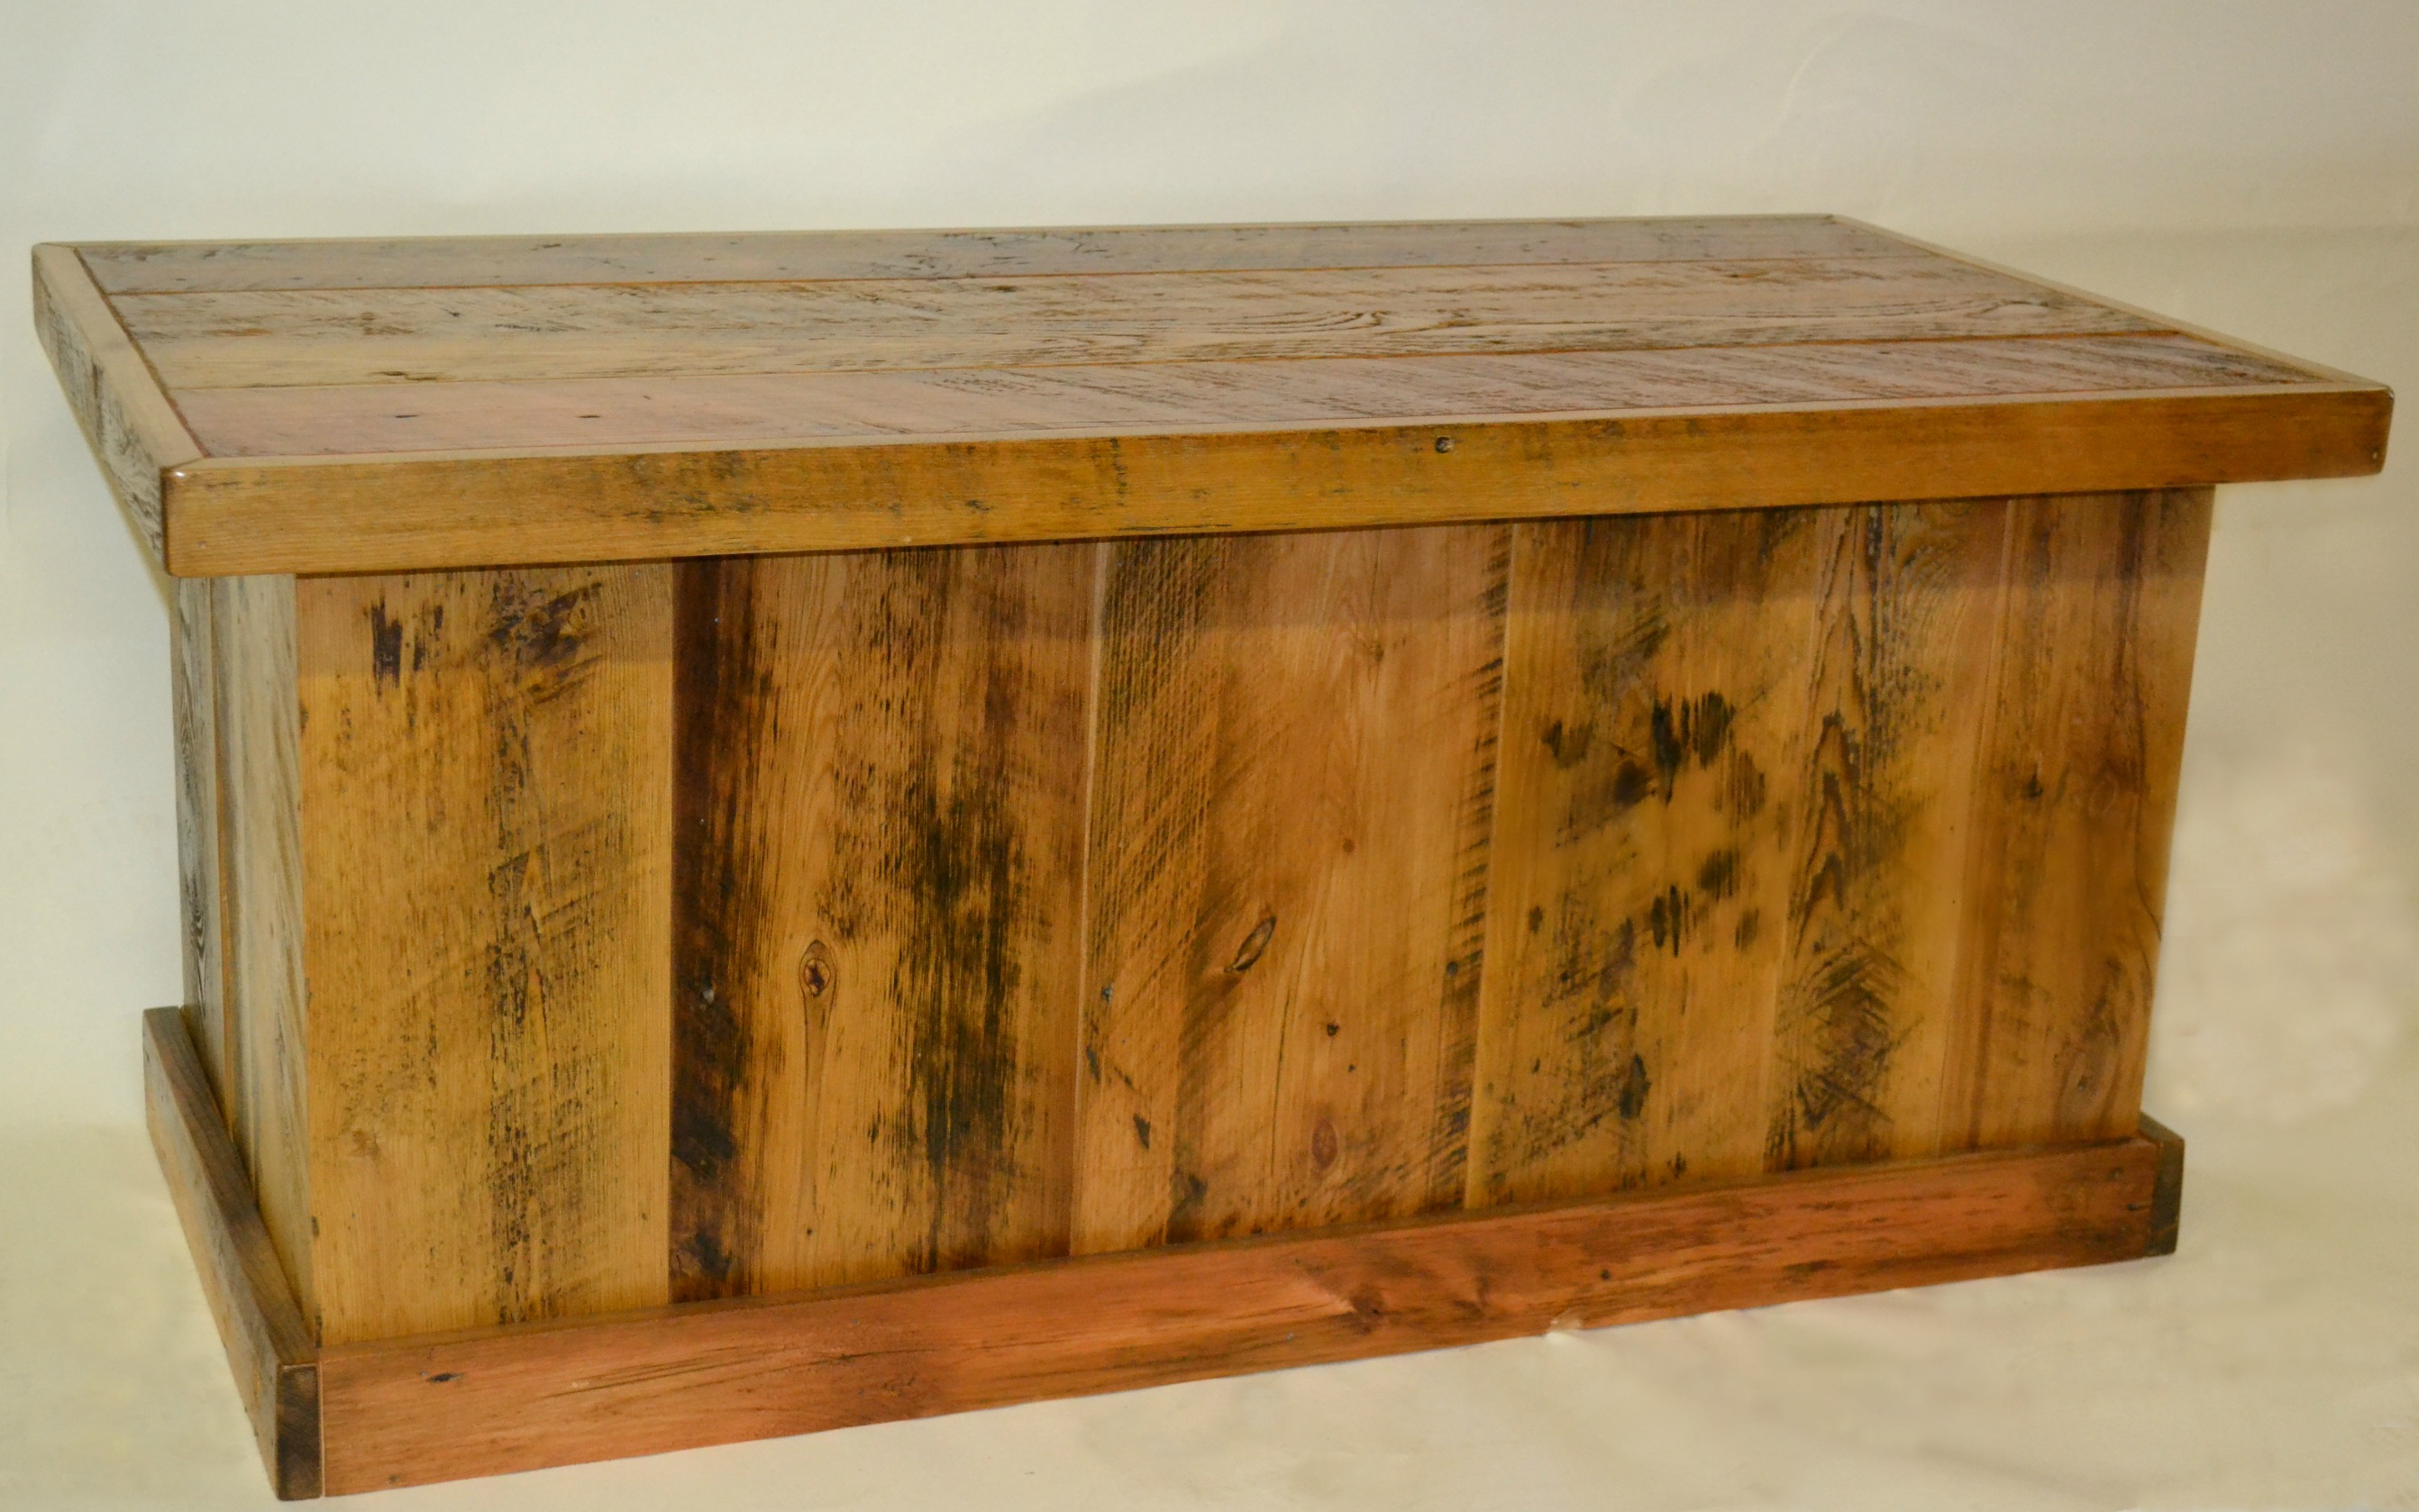 Barnwood TrunkBlanket ChestCoffee Table Rustic Furniture Mall by